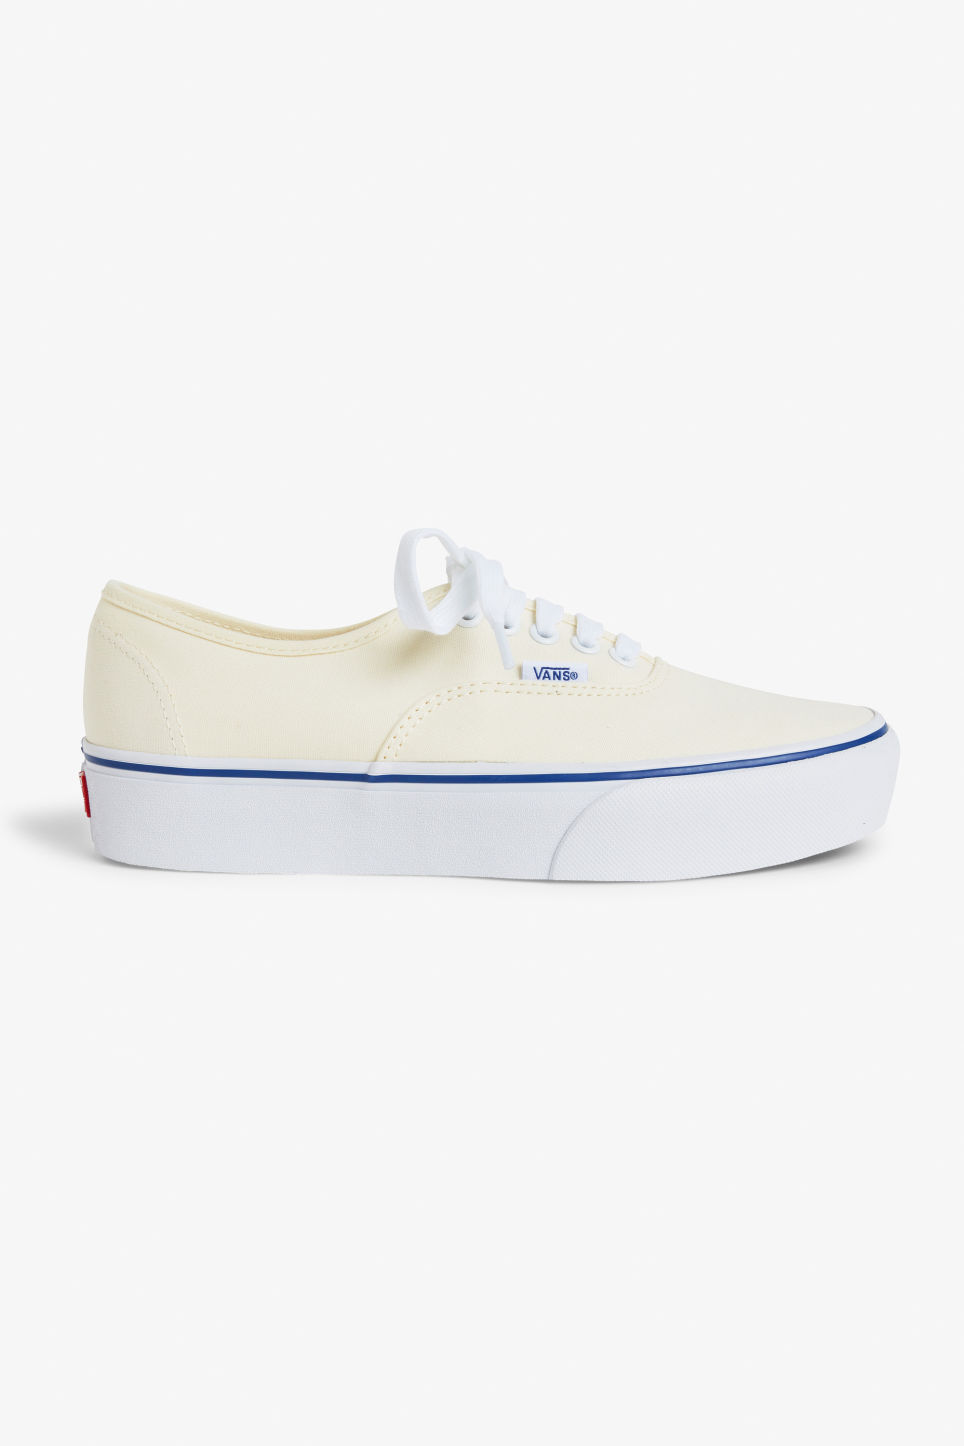 Detailed image of Monki vans authentic platforms 2.0 in white